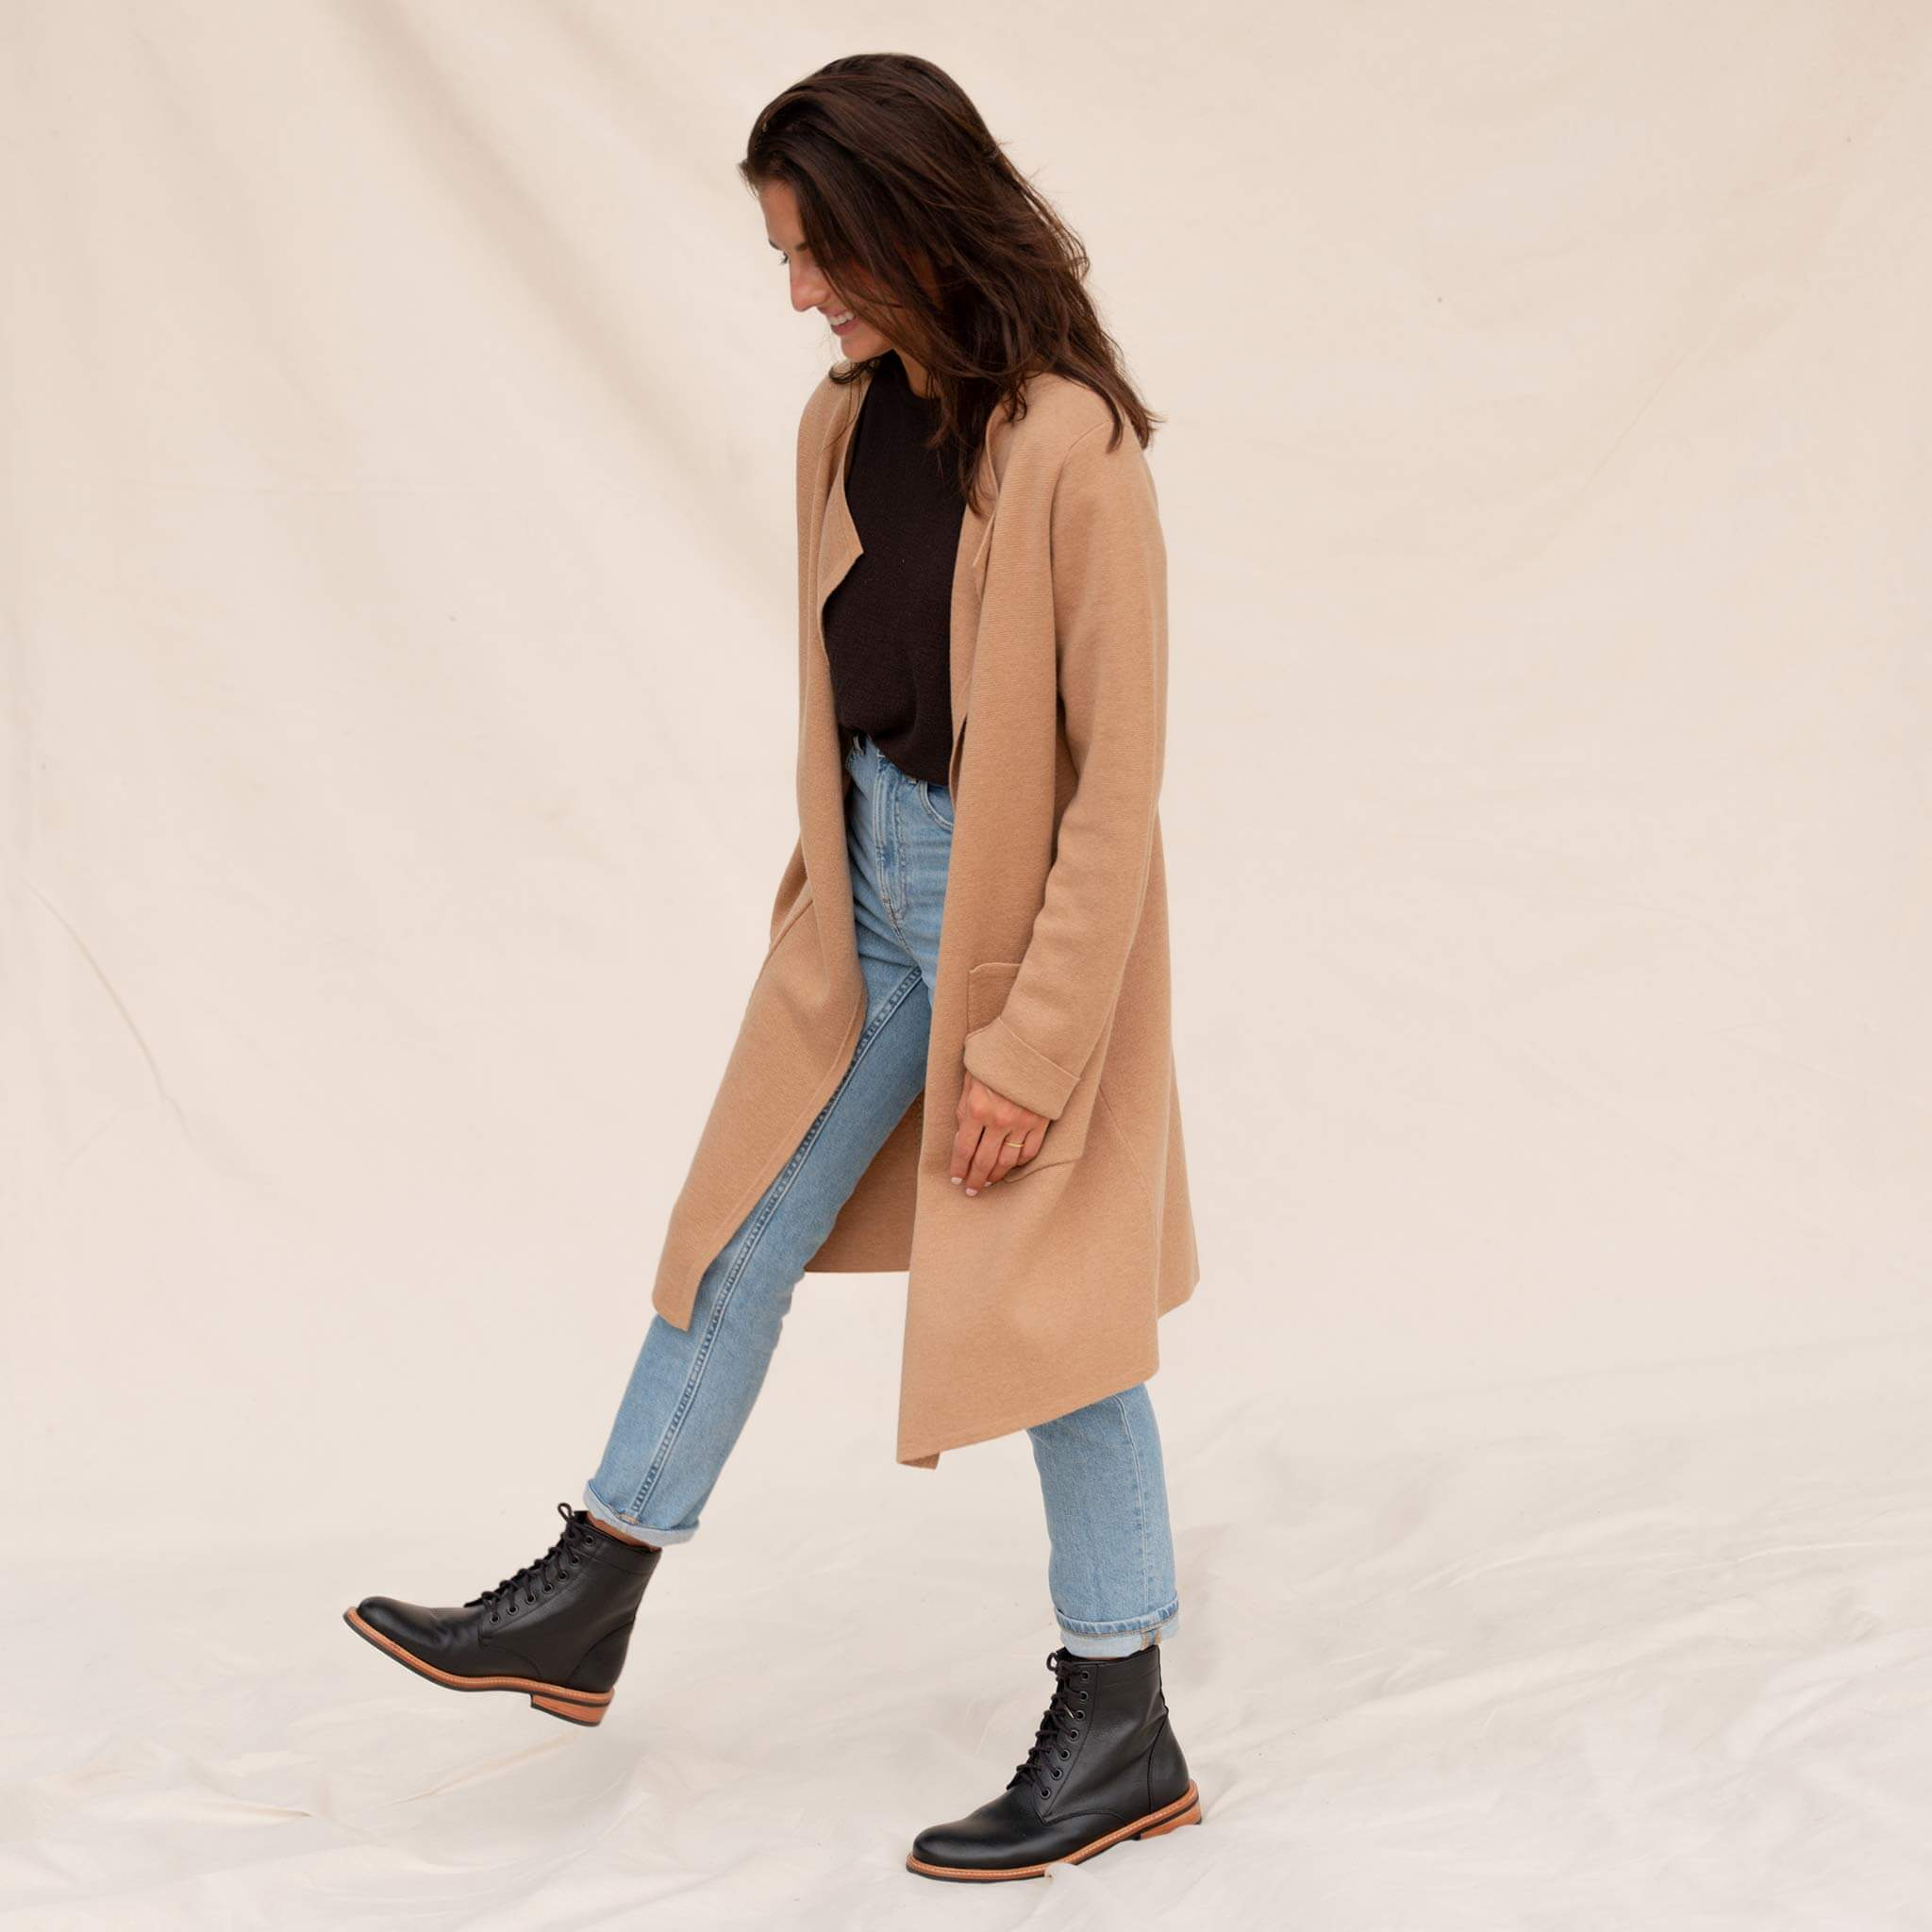 Amalia All Weather Boots - eco-friendly boots